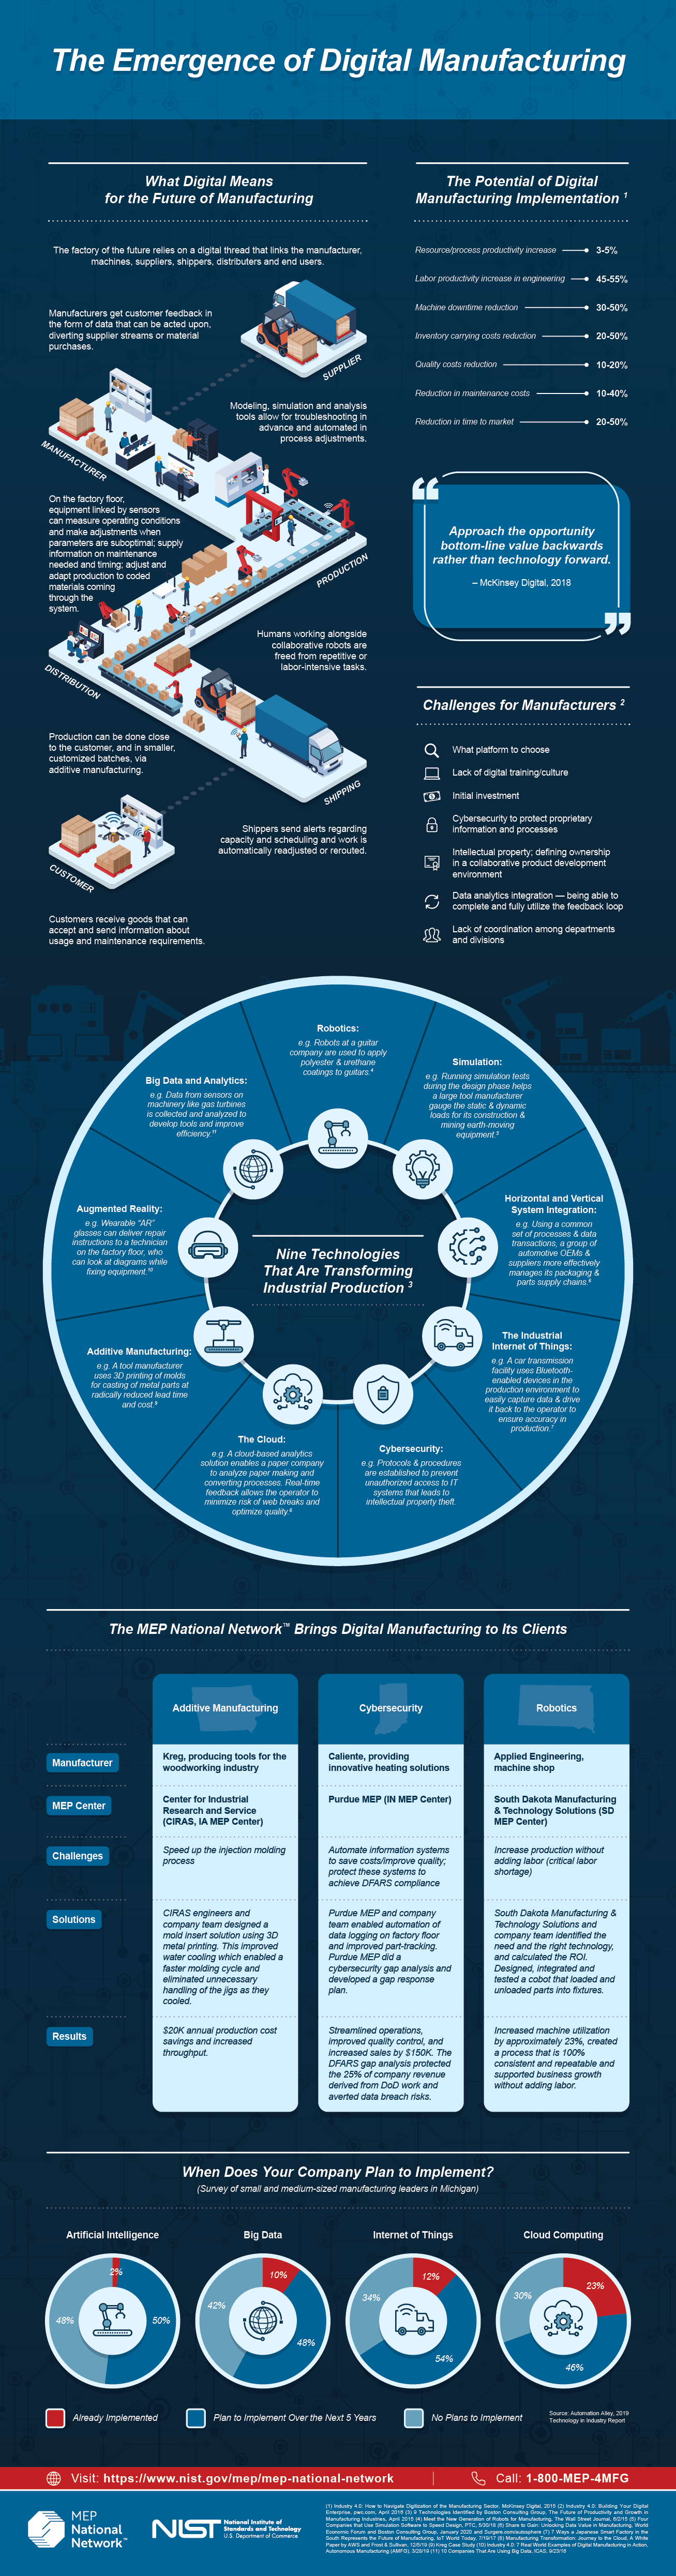 The Emergence of Digital Manufacturing Infographic